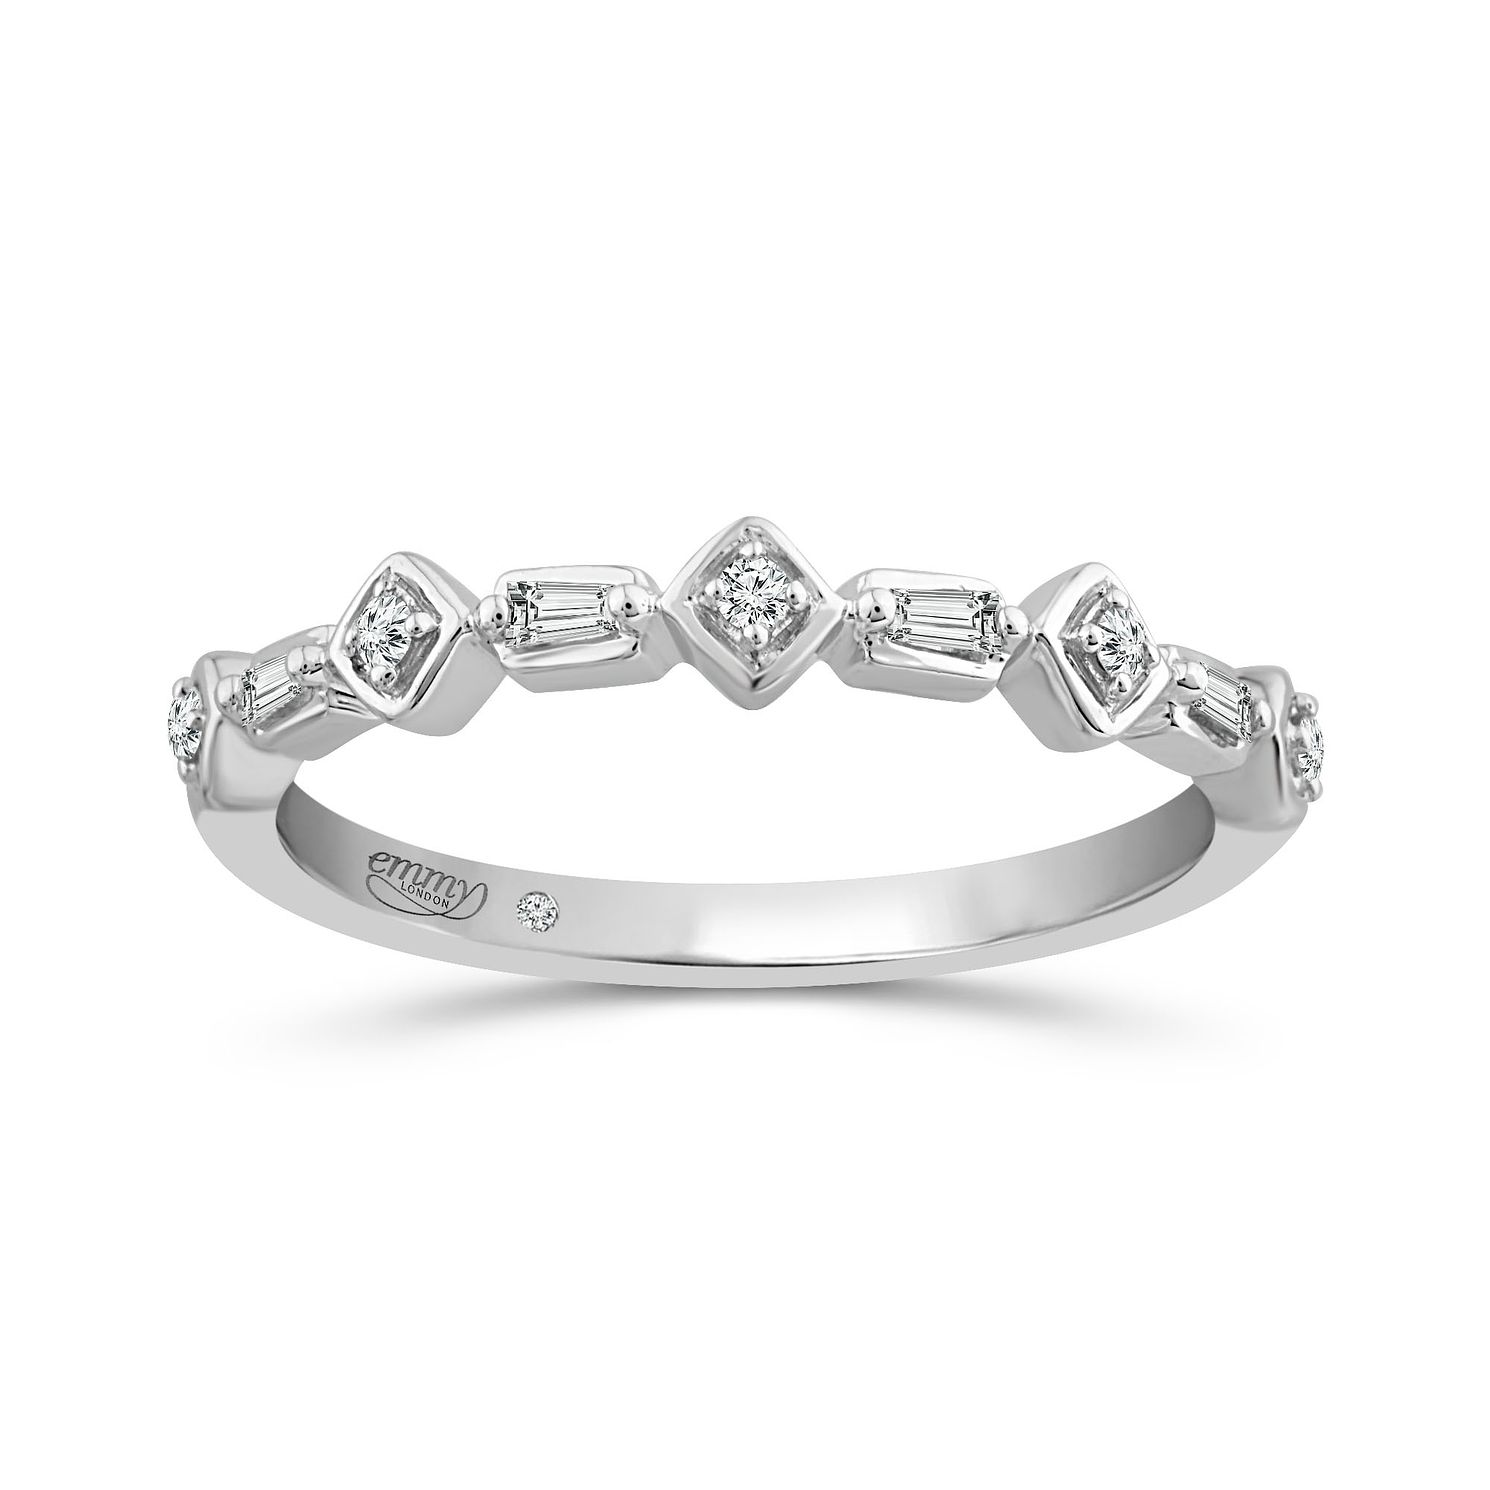 Emmy London 9Ct White Gold Fancy 0.07Ct Diamond Band - Product number 5149320